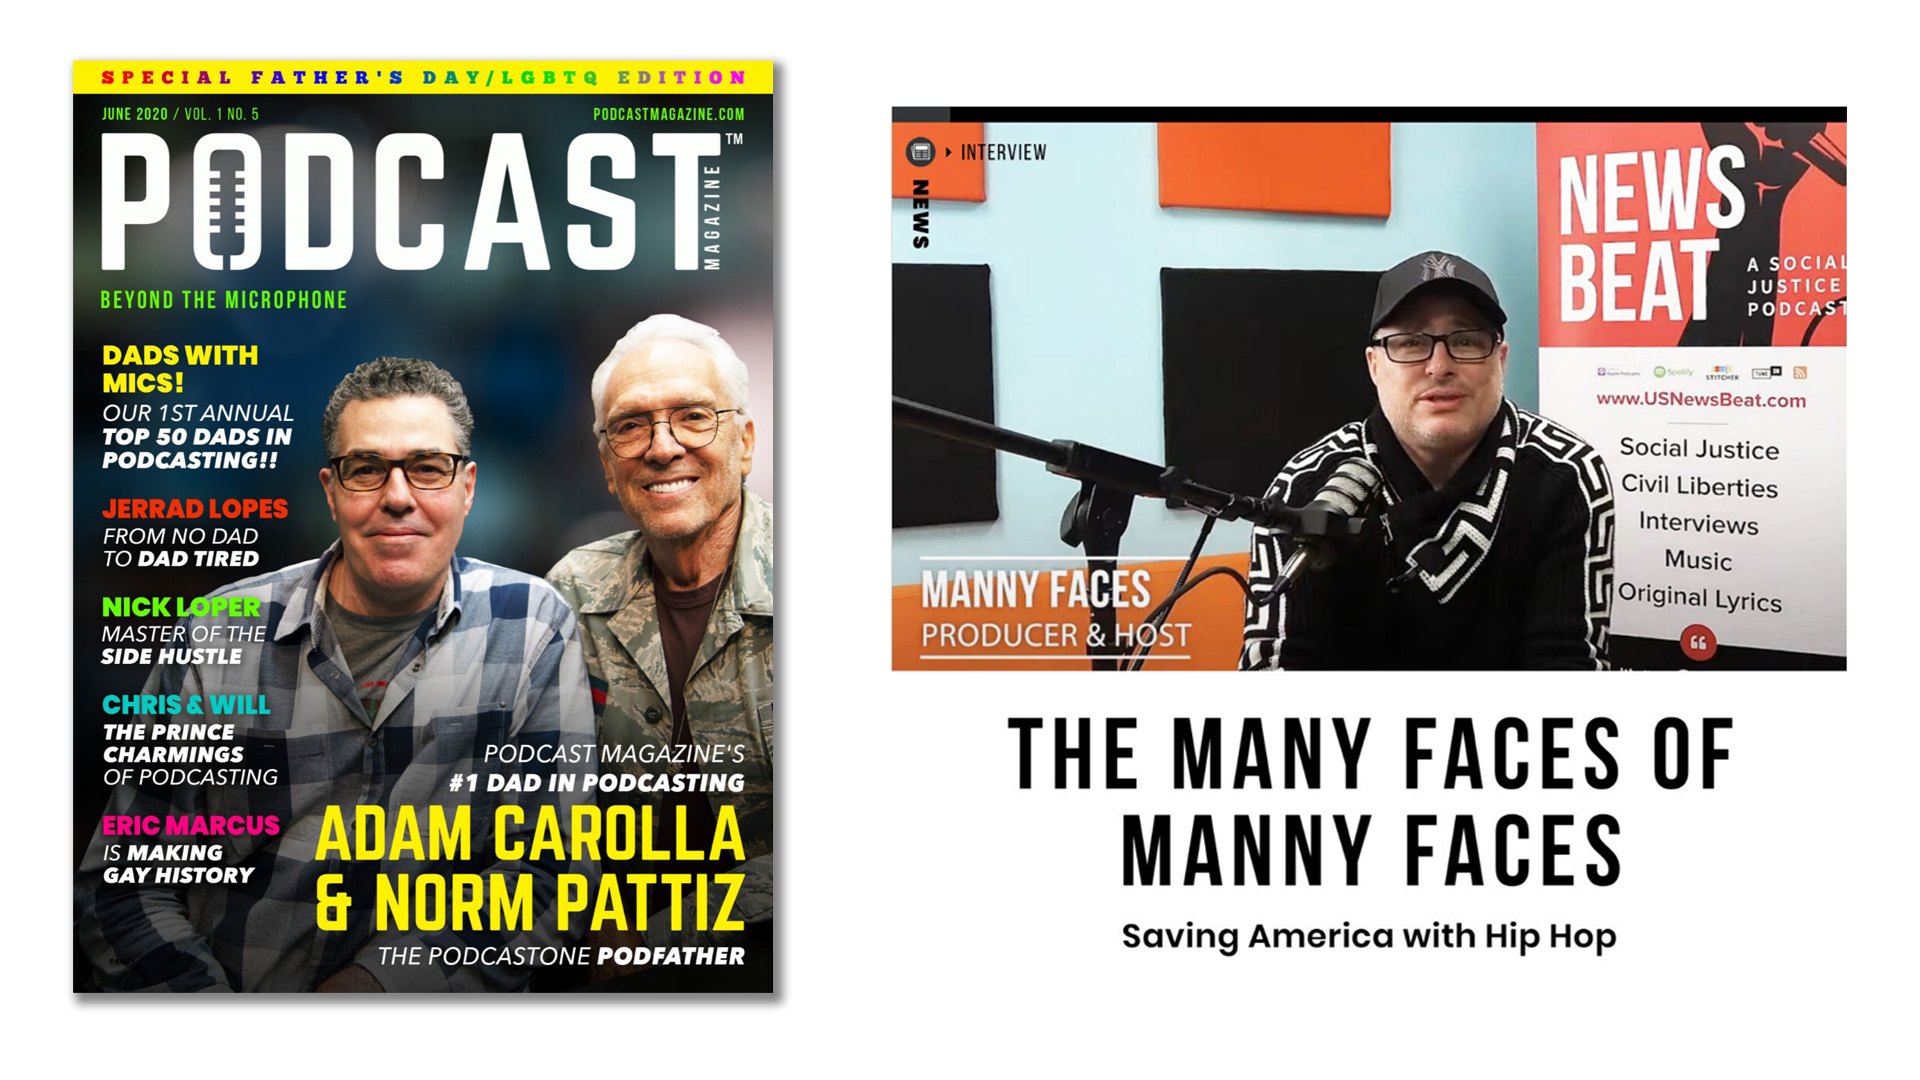 Podcaster Manny Faces feature in Podcast Magazine